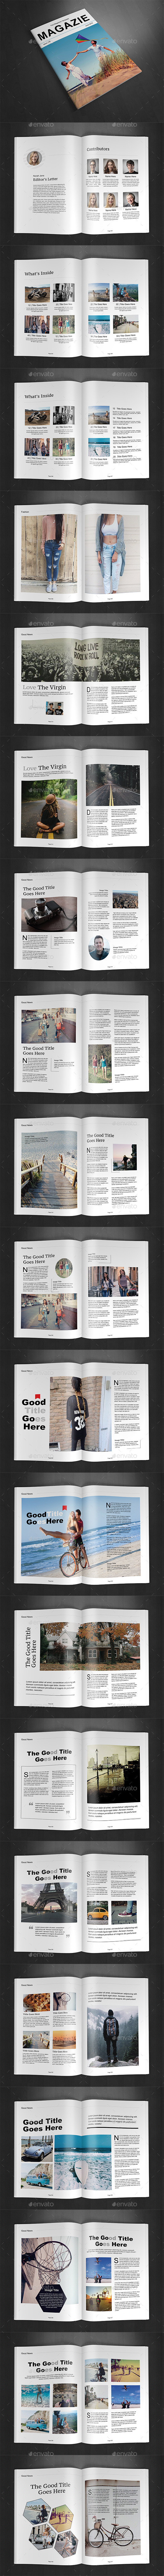 A4 Magazine Template Vol.15 - Magazines Print Templates